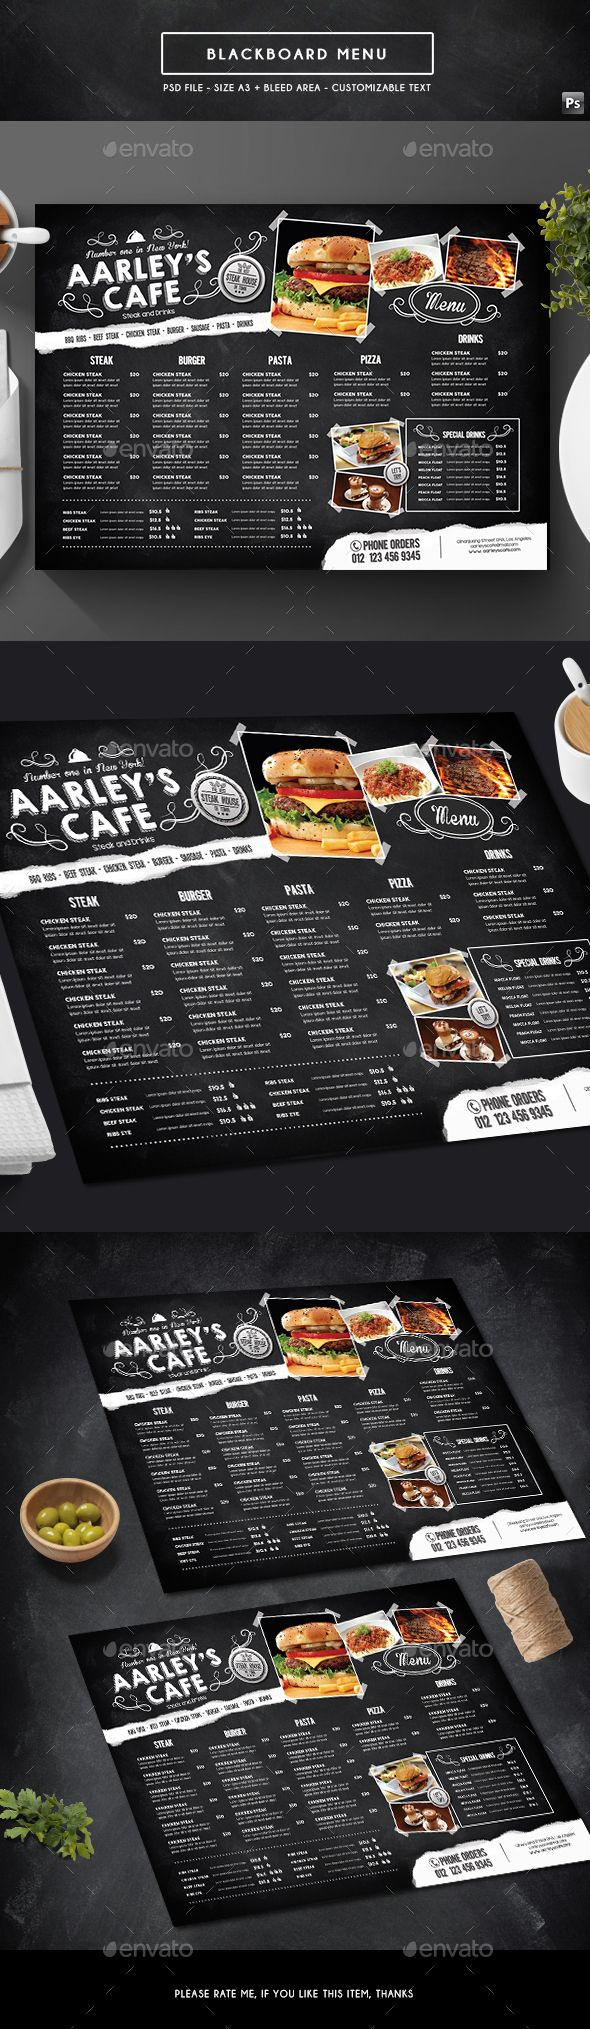 Best 25 blackboard menu ideas on pinterest chalk board for Blackboard design ideas